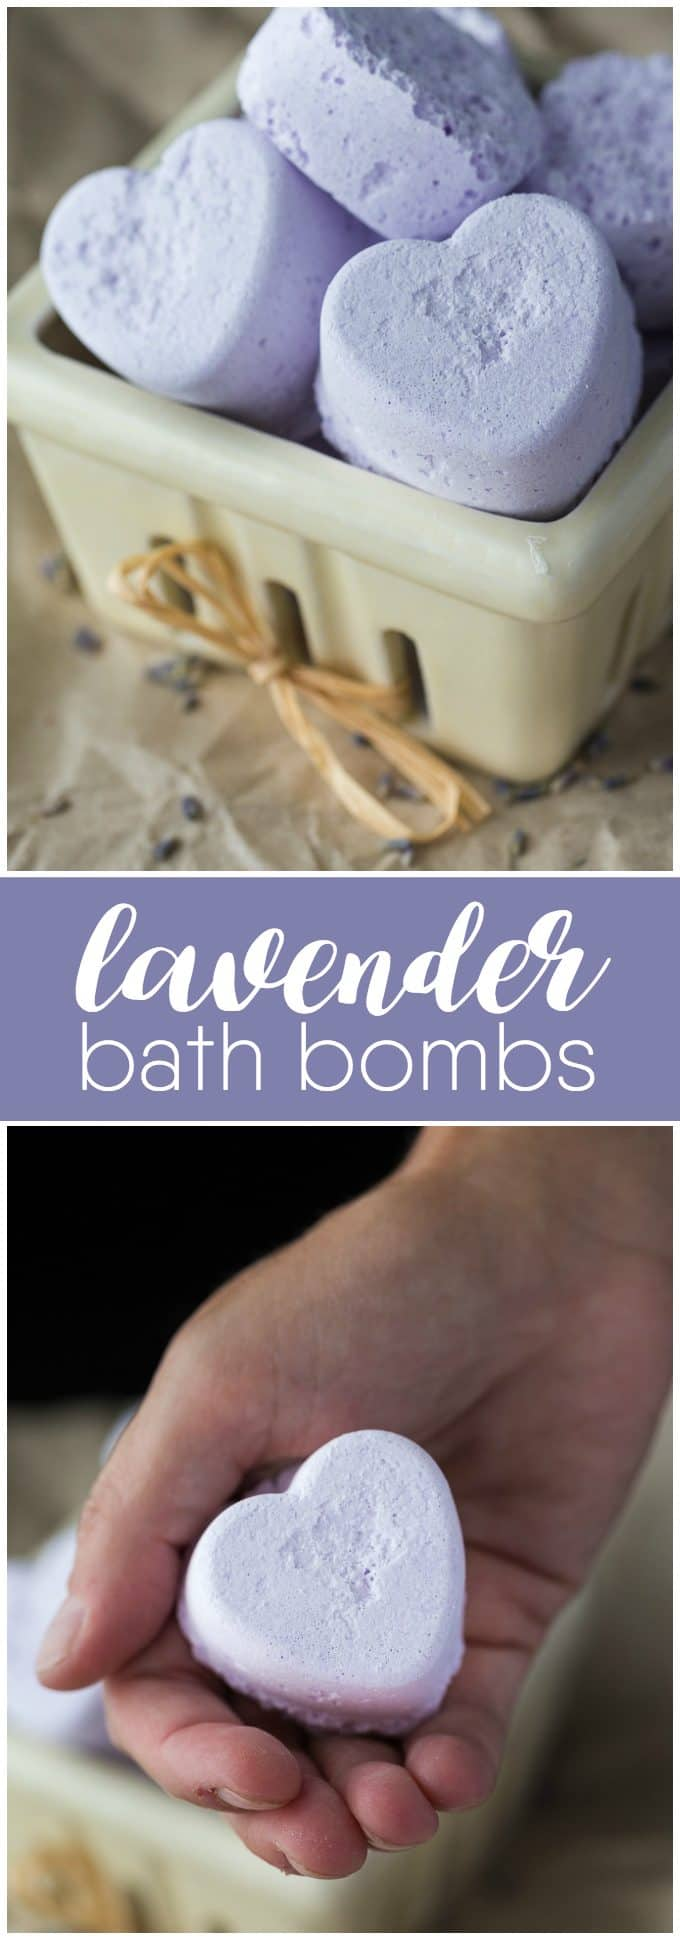 Lavender Bath Bombs - You'll be surprised at how easy it is to make your own bath bombs. Keep them, sell them or gift them!